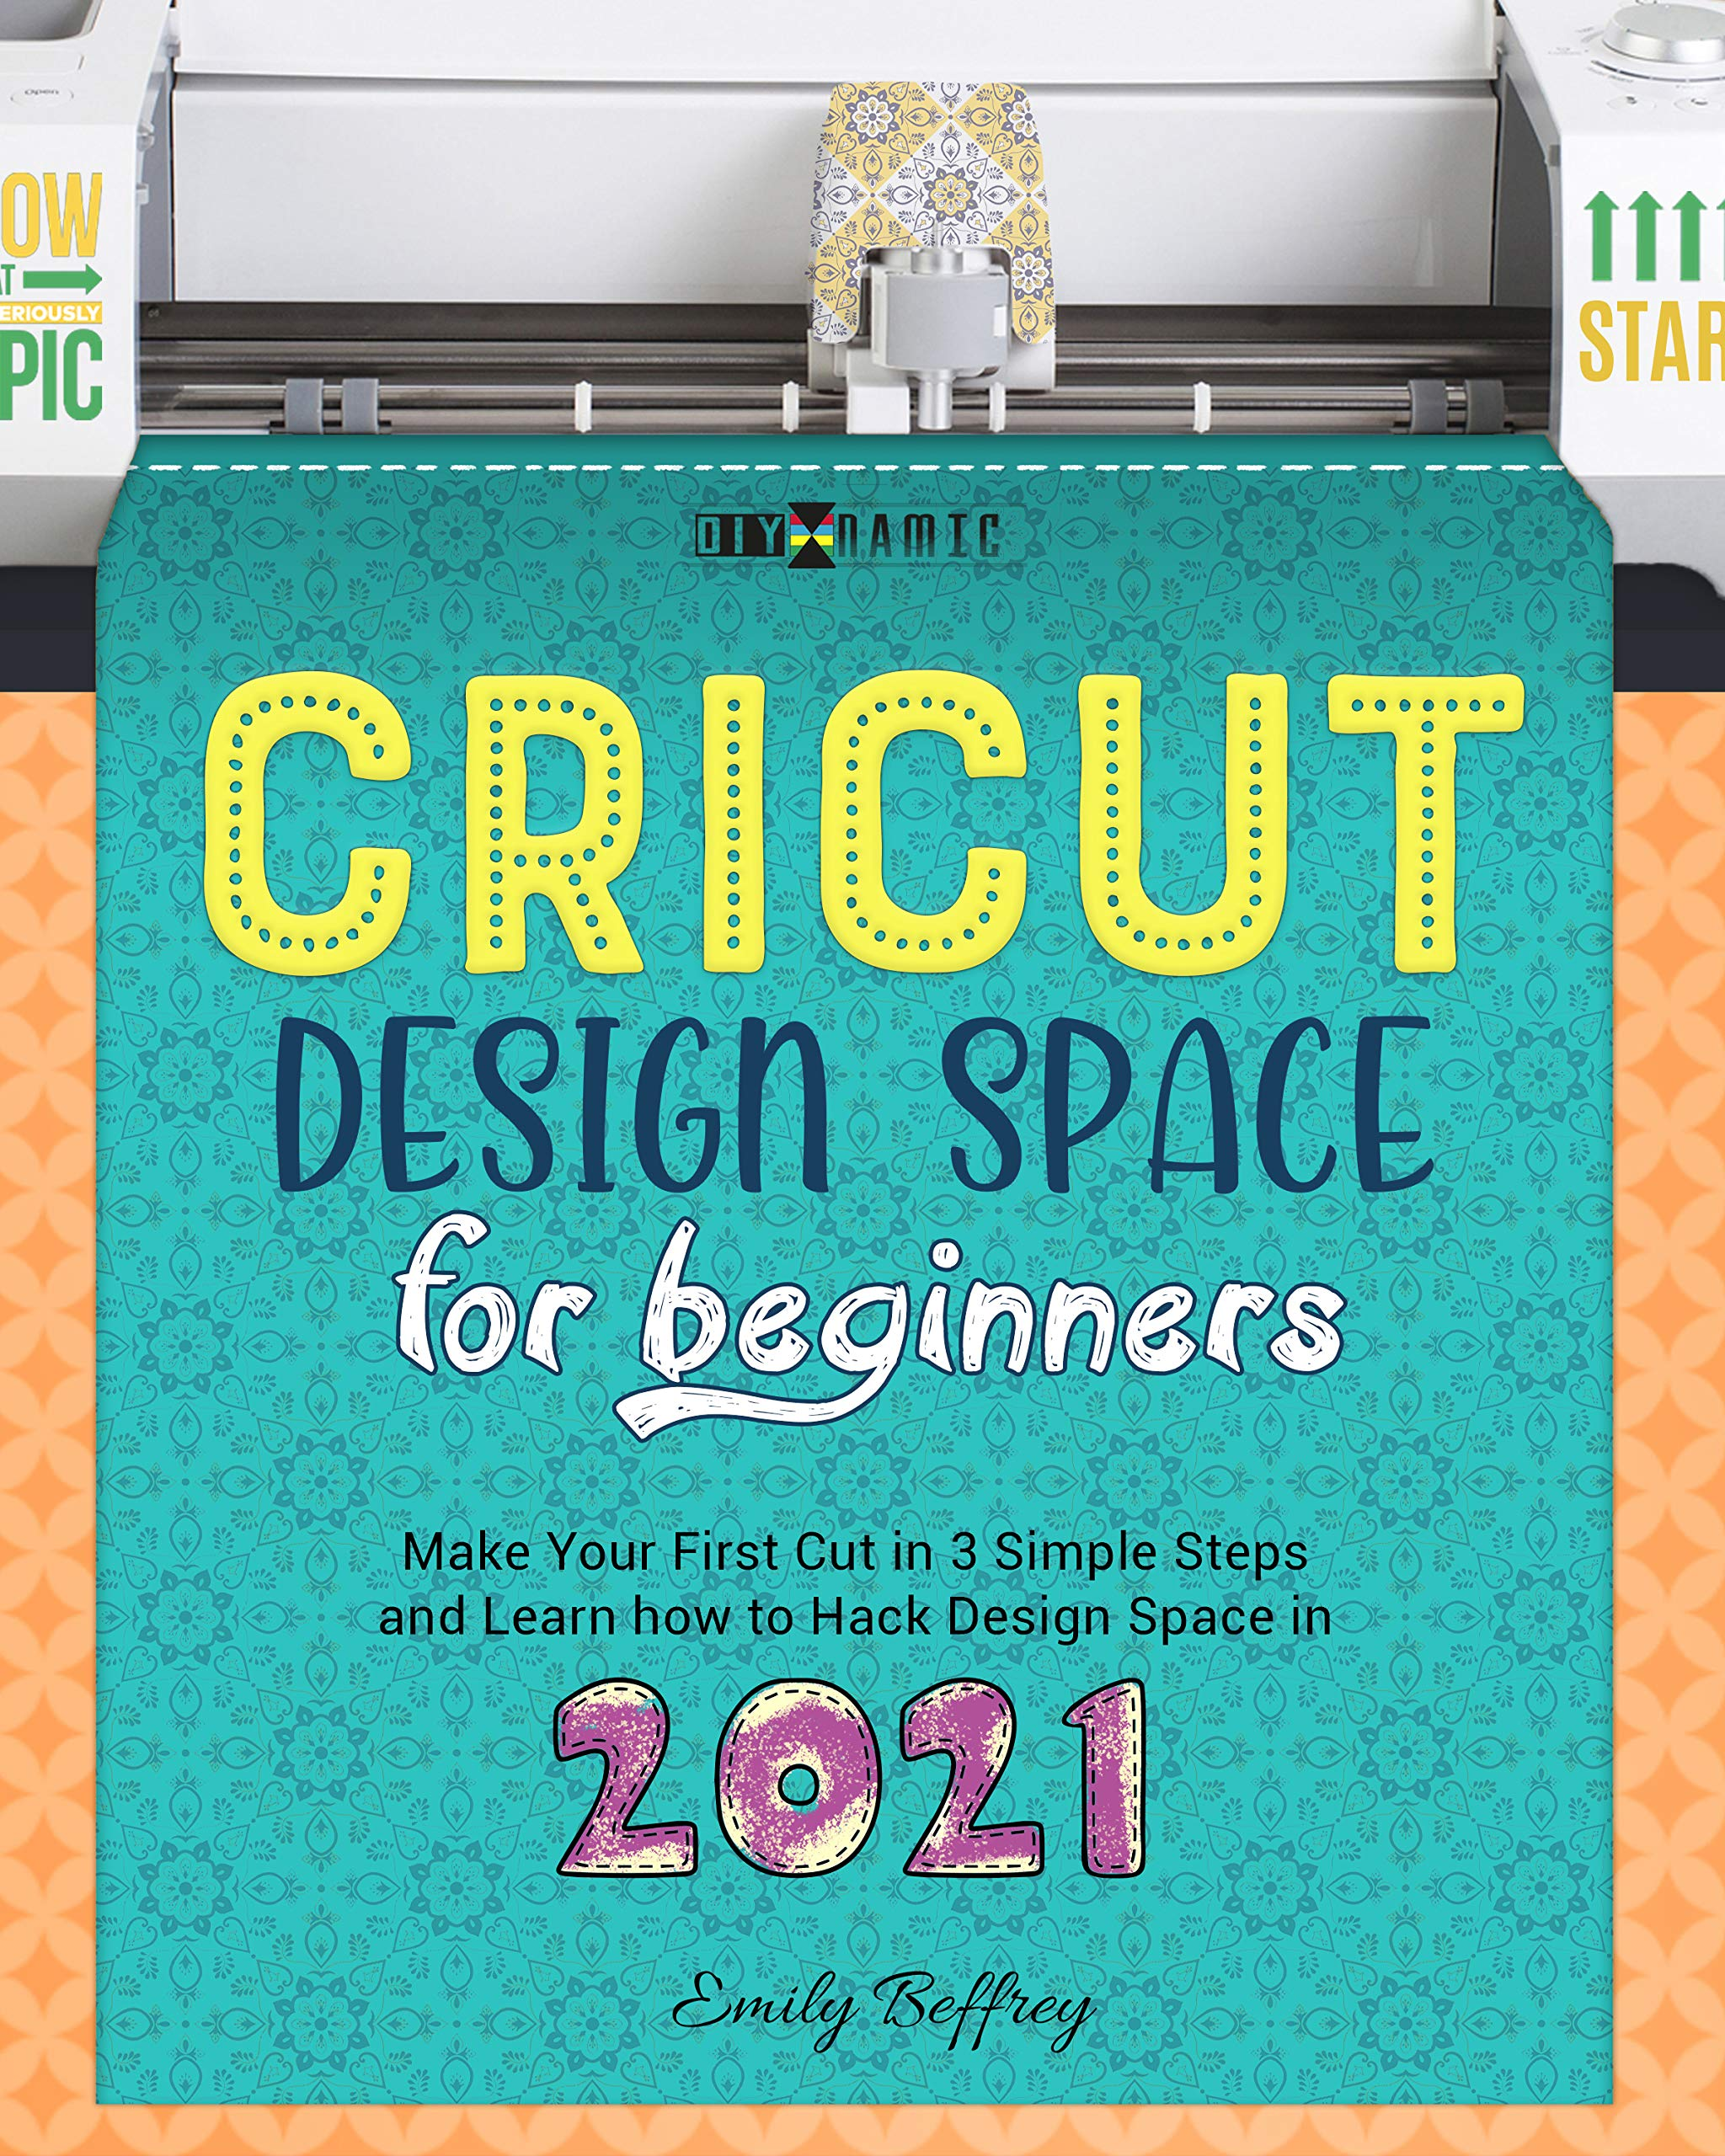 Cricut Design Space for Beginners: Make Your First Cut in 3 Simple Steps and Learn how to Hack Design Space in 2021 (The DIY-NAMIC Series Book 10)